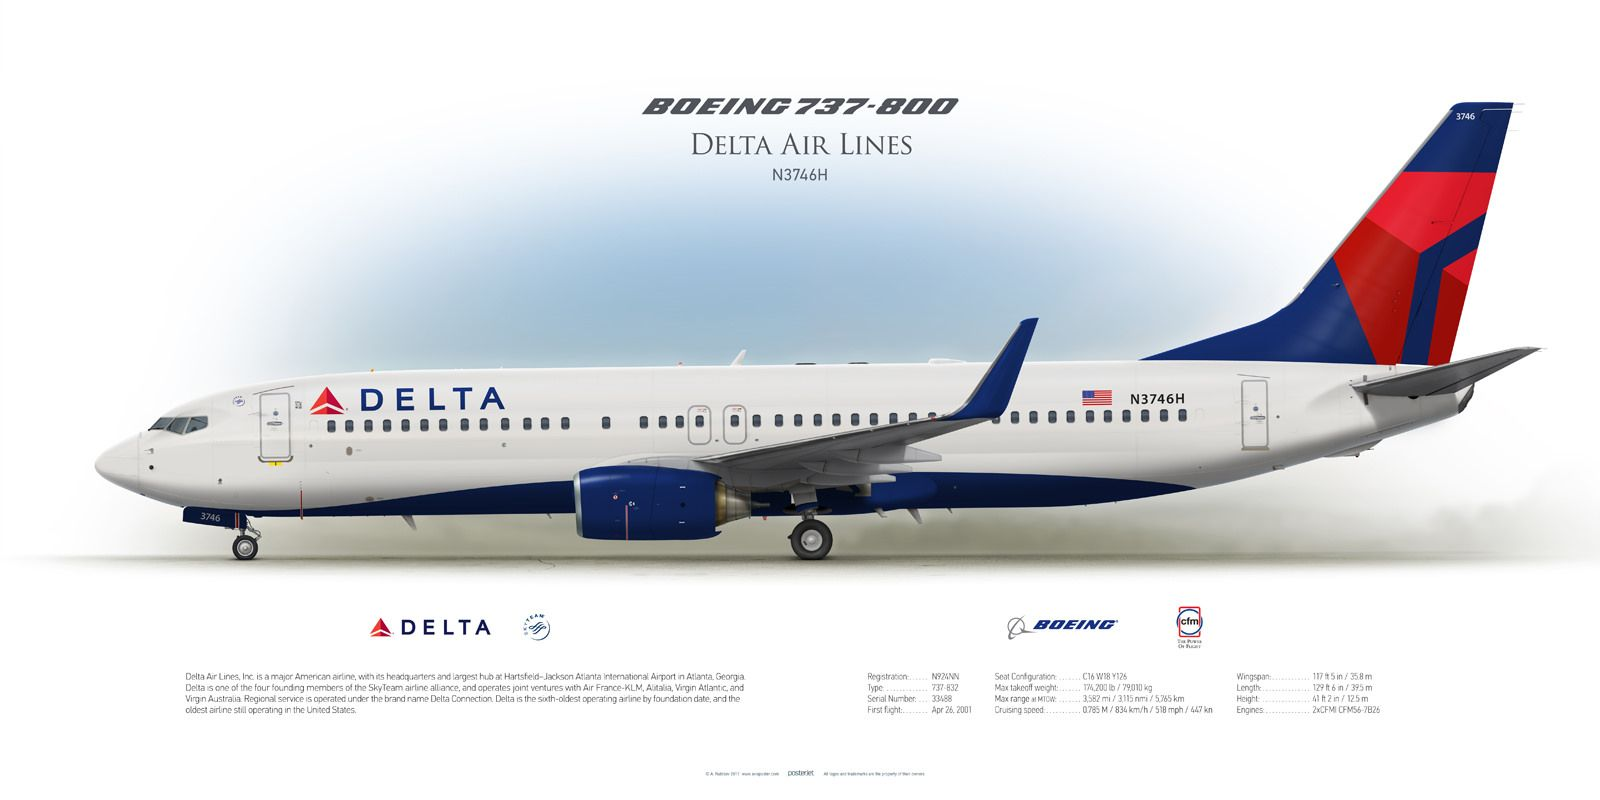 Boeing 737 800 Delta Air Lines N3746h Commercial Aircraft